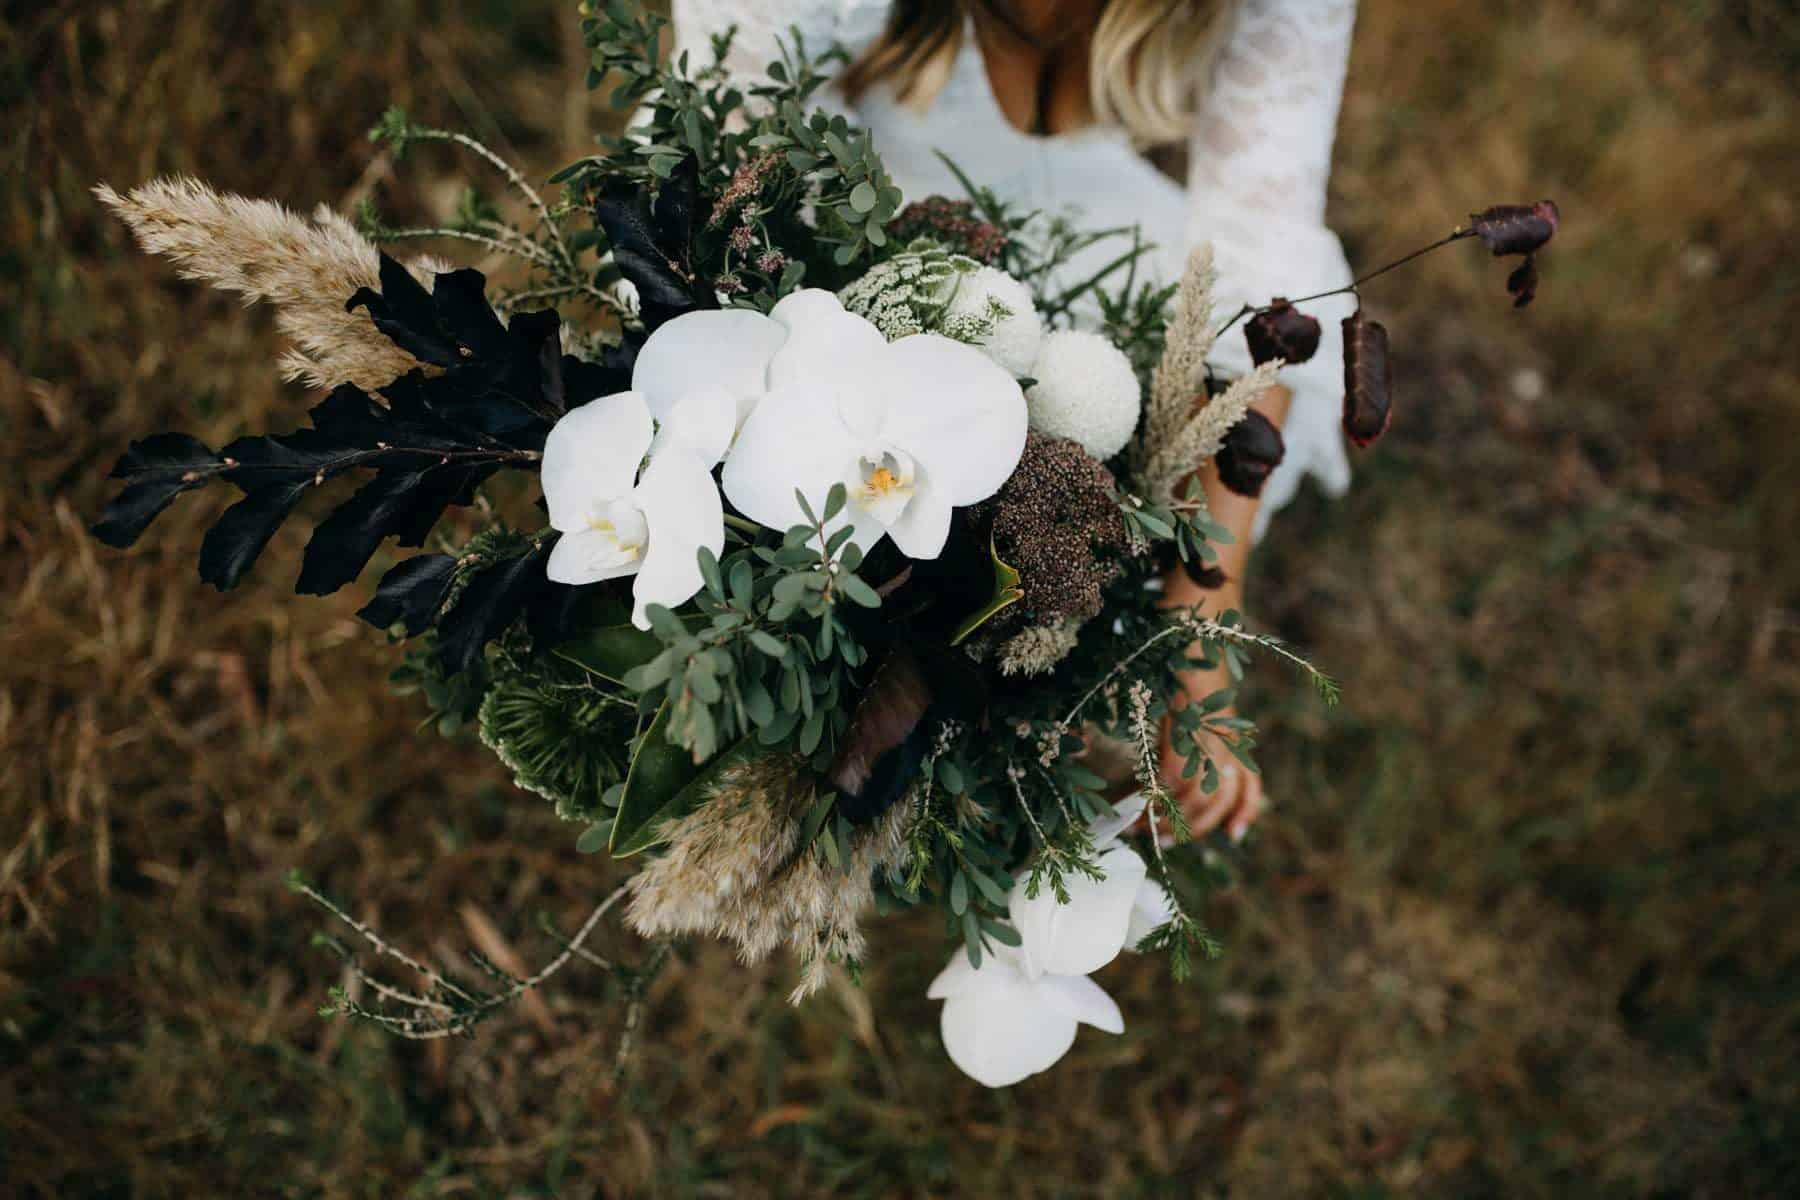 Best bridal bouquets and wedding flowers 2019 - organic green and white bouquet